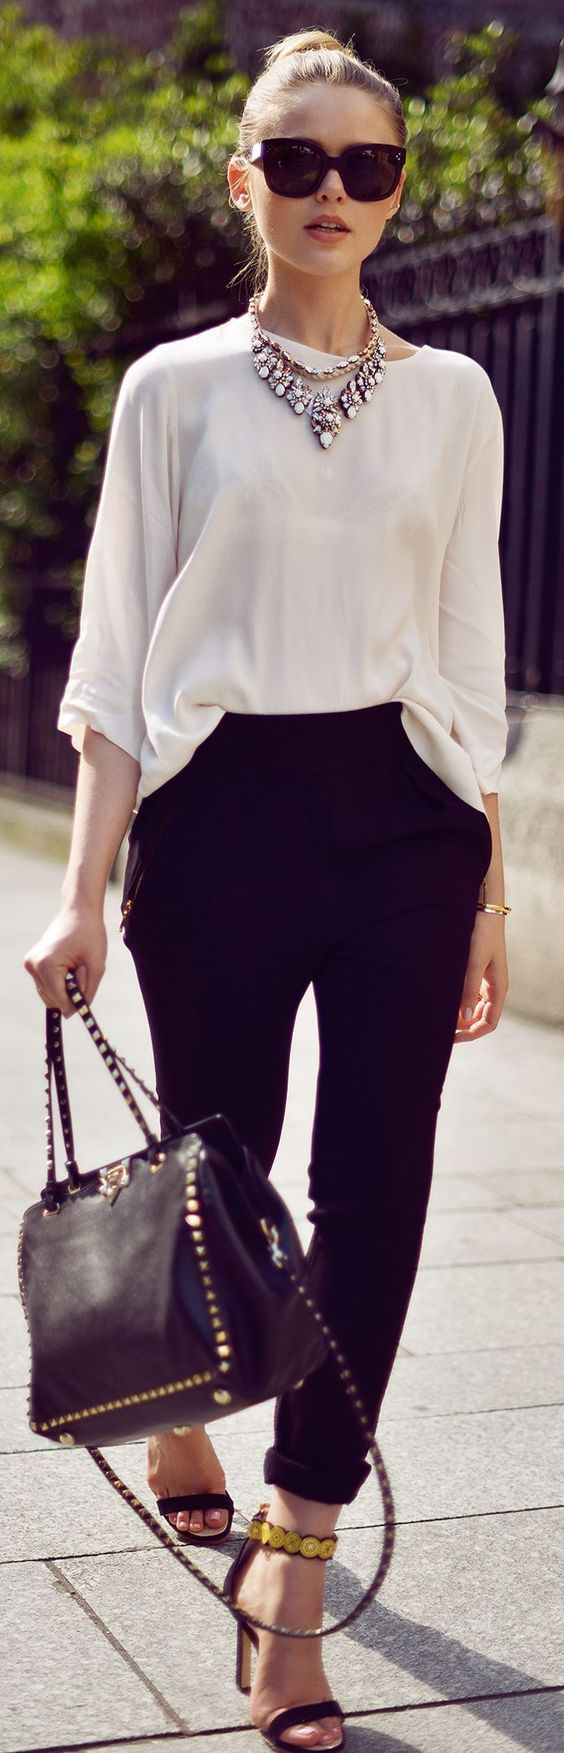 A Hint of Life shares office outfit inspiration pictures